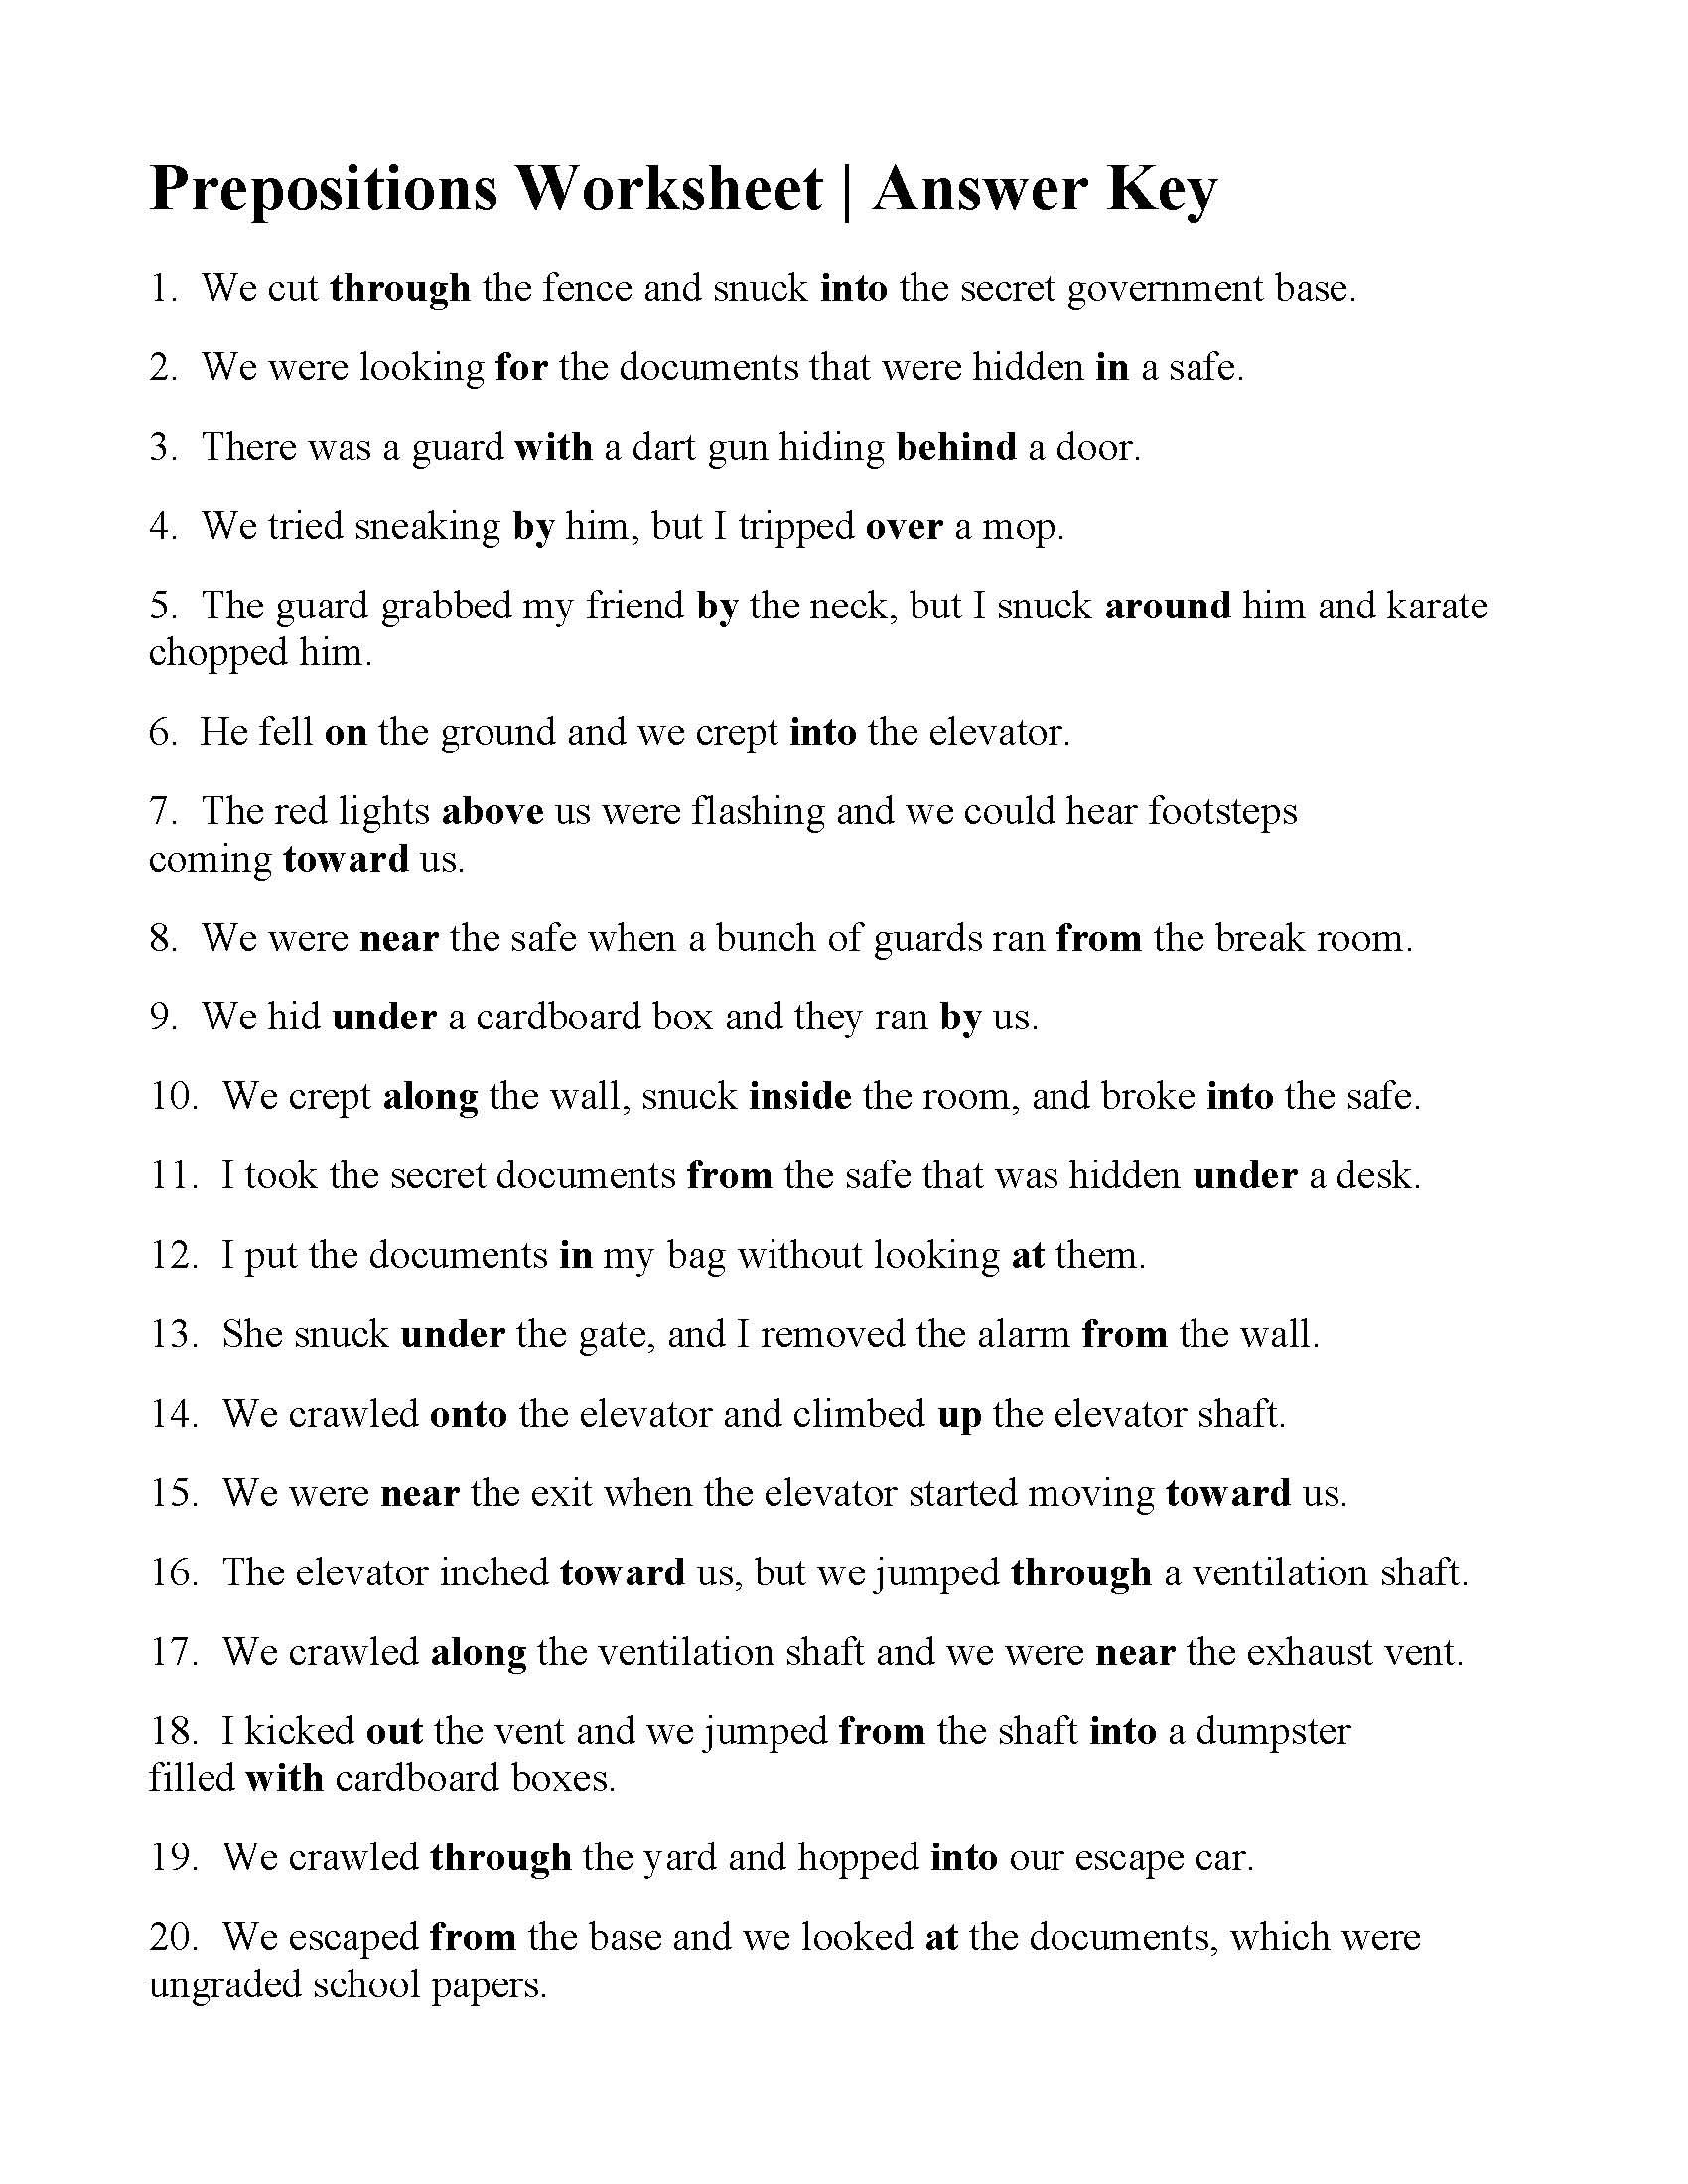 Worksheet Preposition